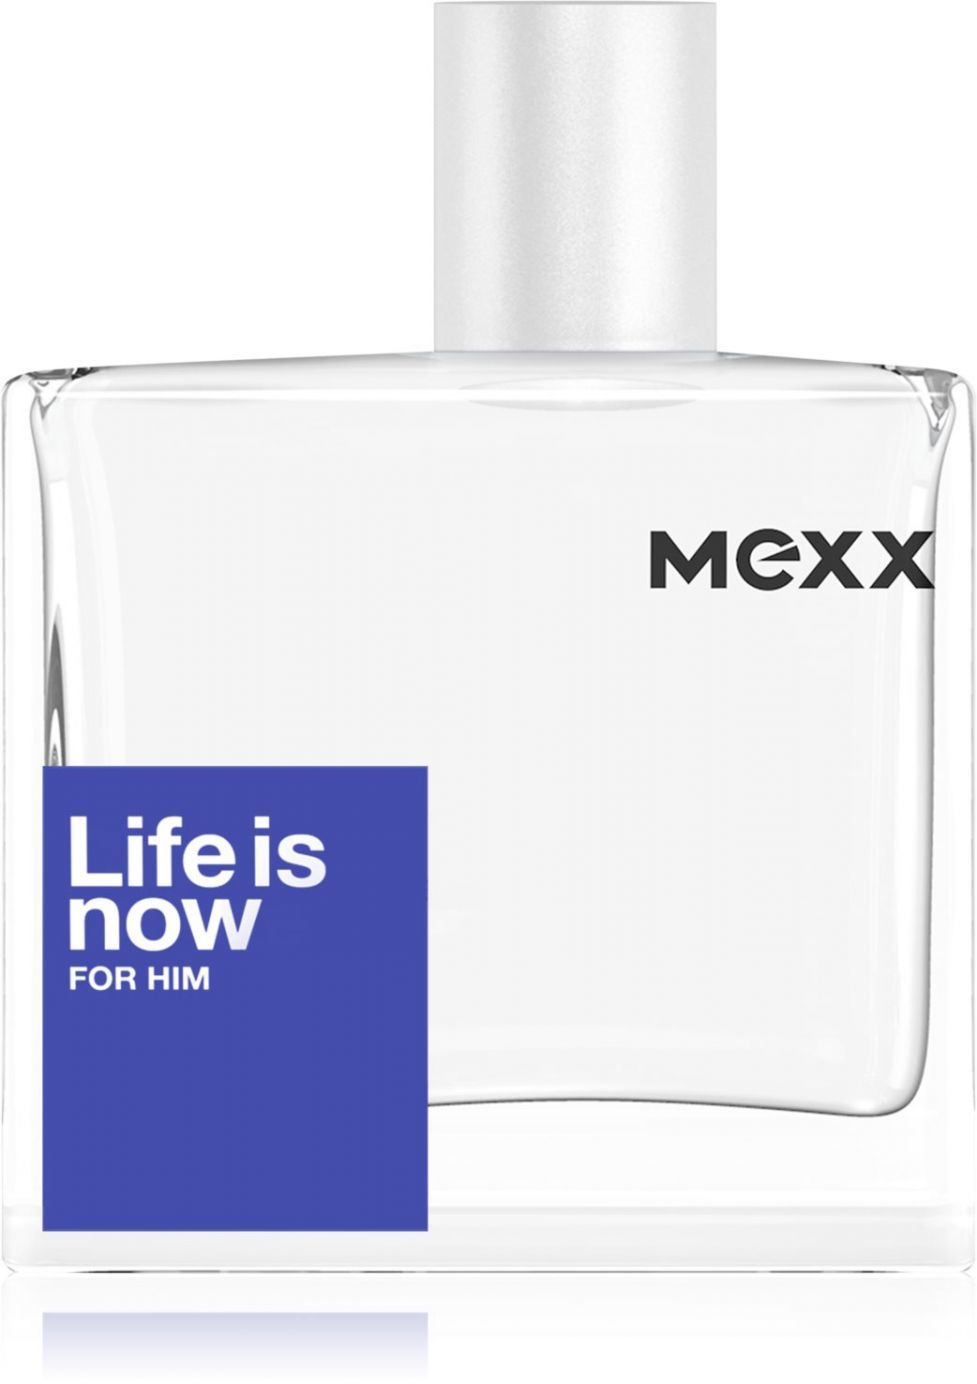 Mexx Life is now For Him 30ml woda toaletowa